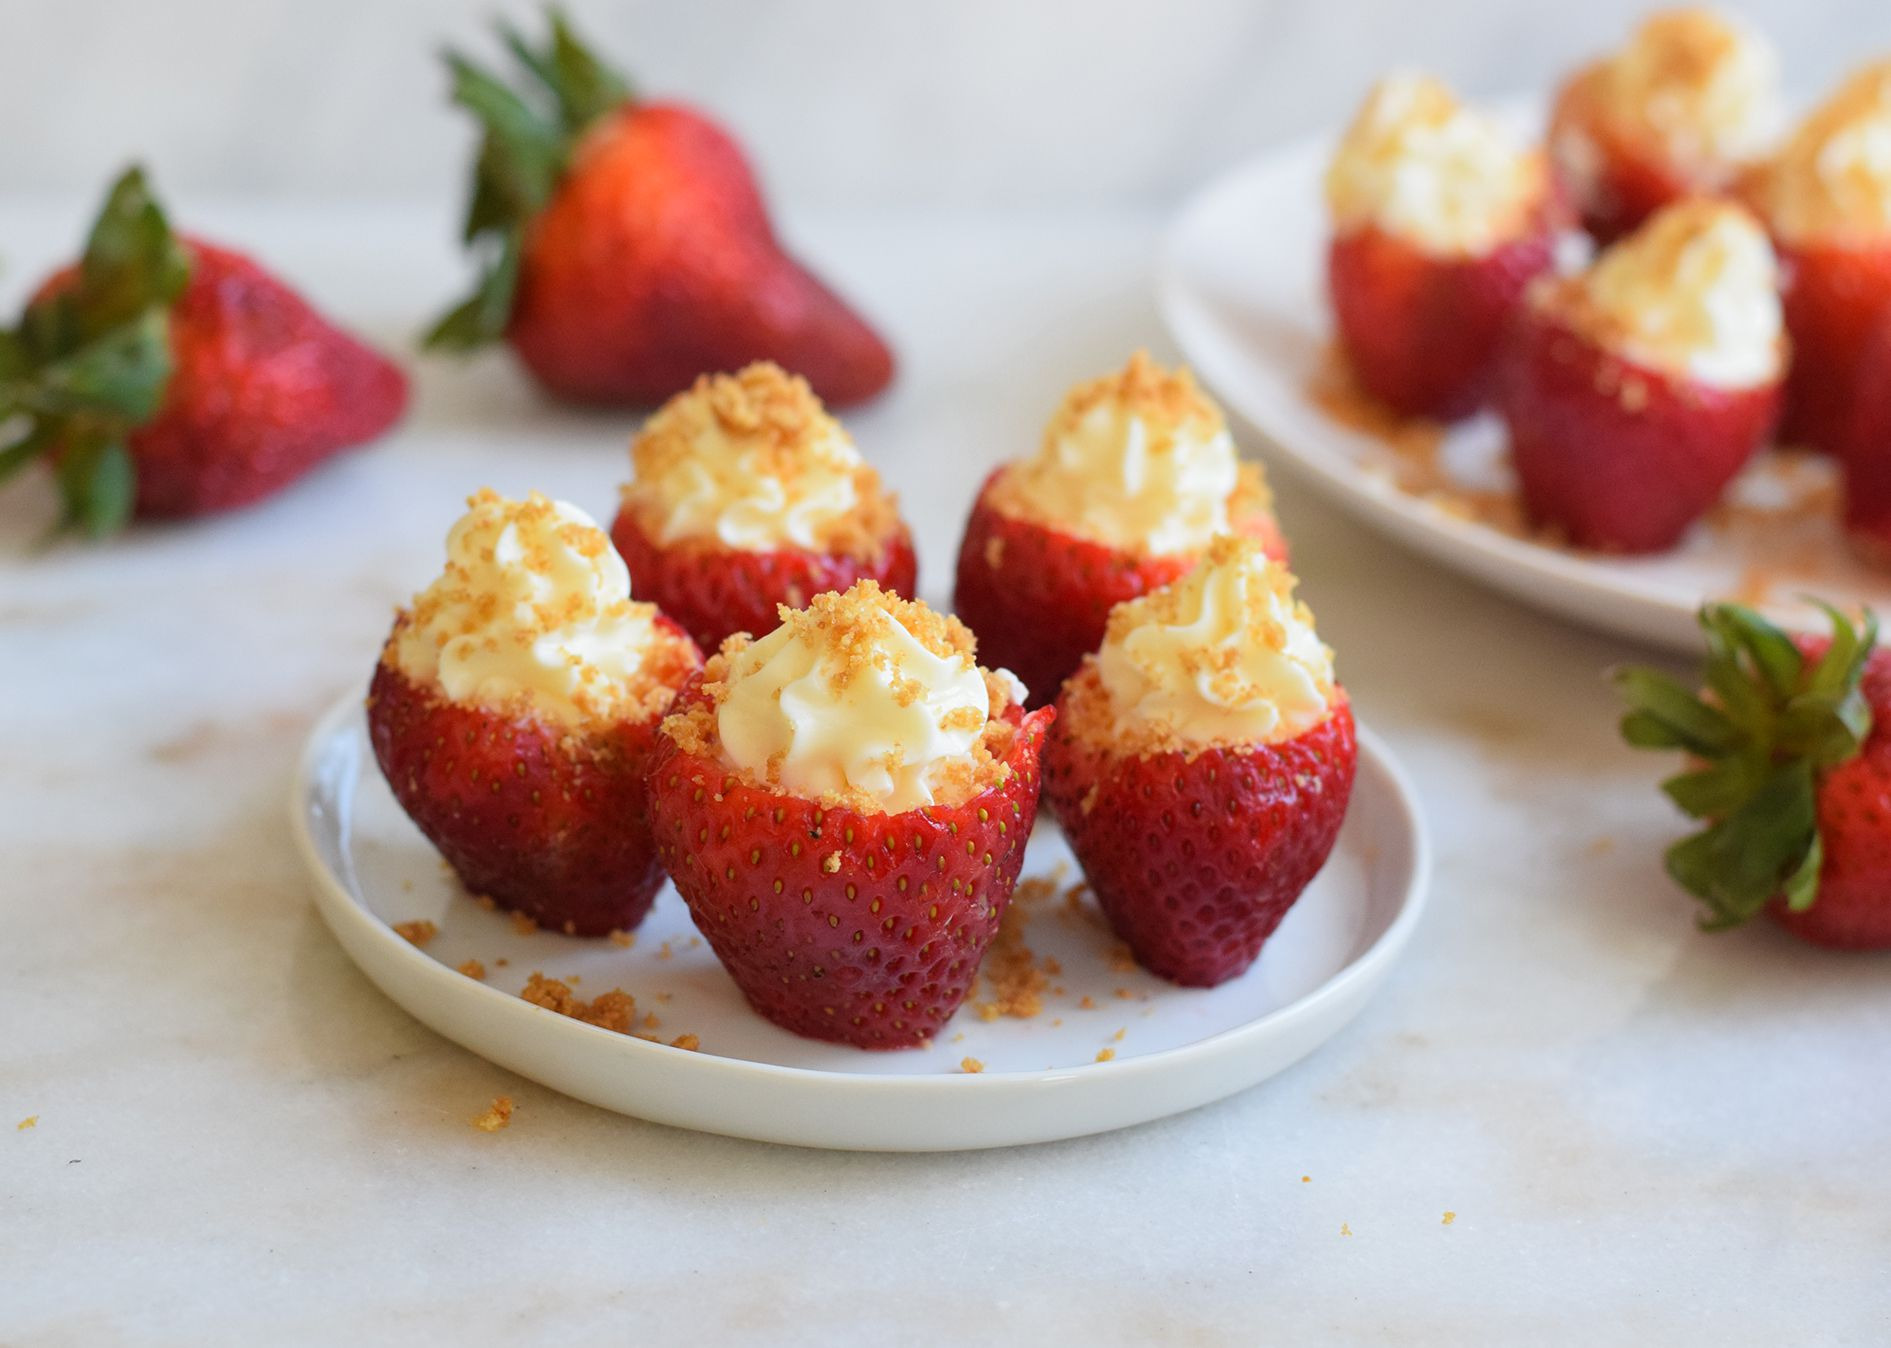 Cheesecake Stuffed Strawberries Are an Easy No-Bake Summer Dessert